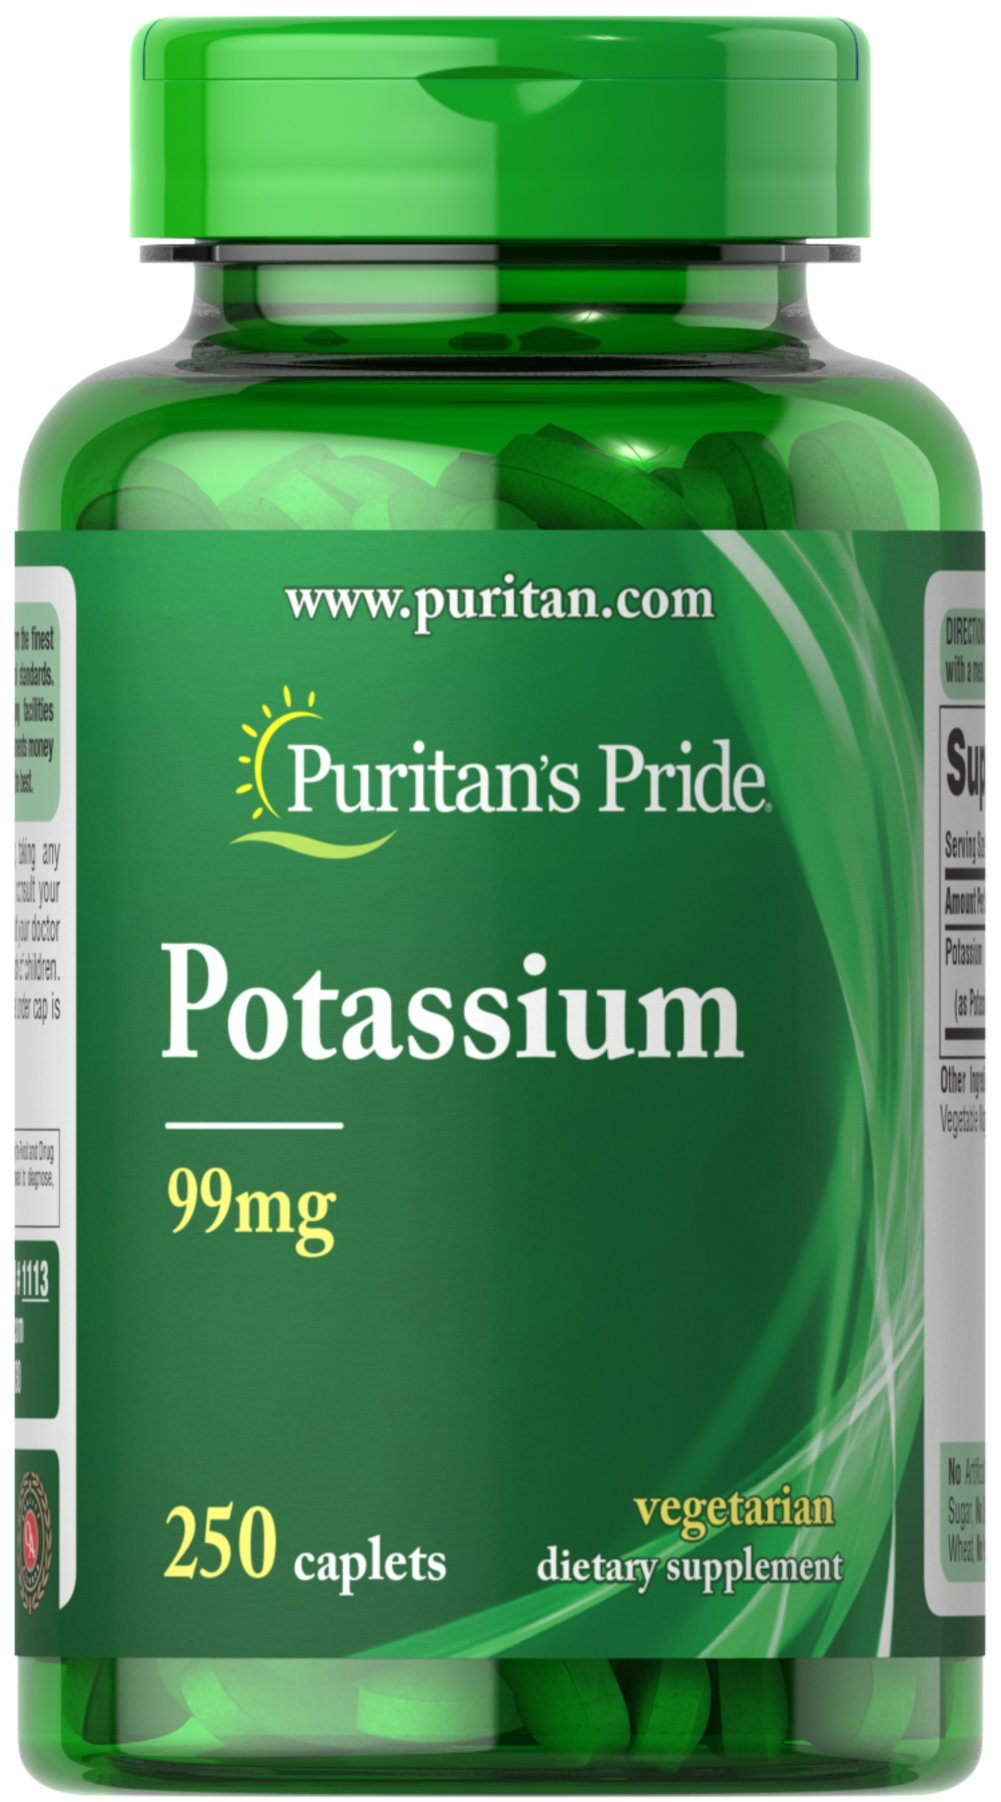 Potassium 99 mg <p>Works with sodium to regulate the body's water balance. </p><p>Helps attract nutrients into cells and required for carbohydrate and protein metabolism. </p><p></p> 250 Caplets 99 mg $12.99